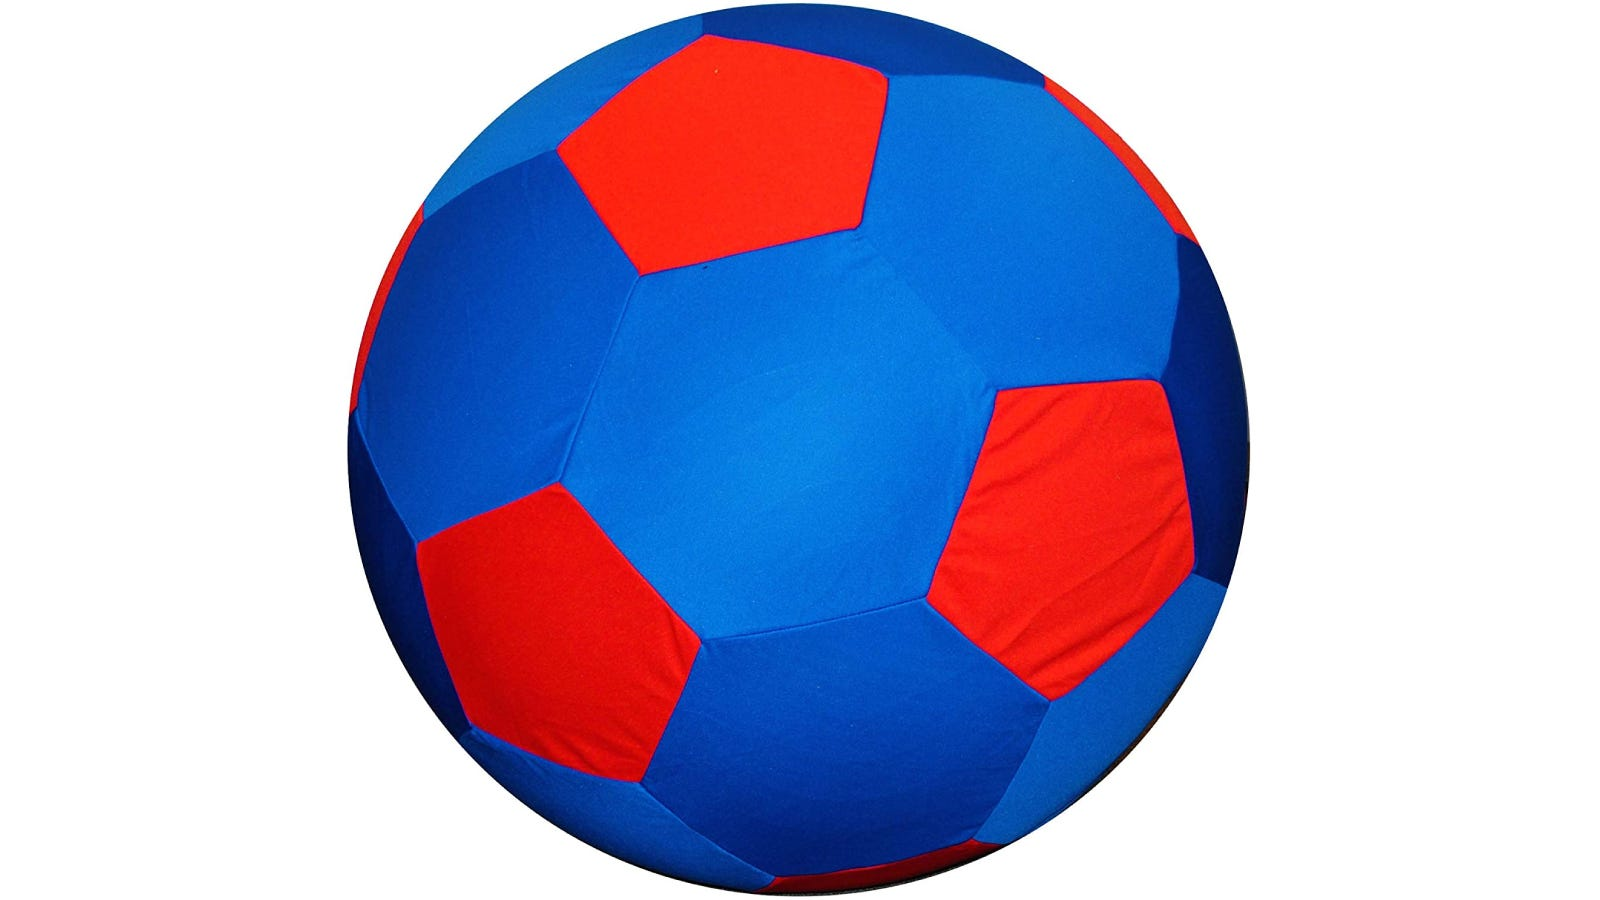 a blue horse ball with red patches that resembles a soccer ball